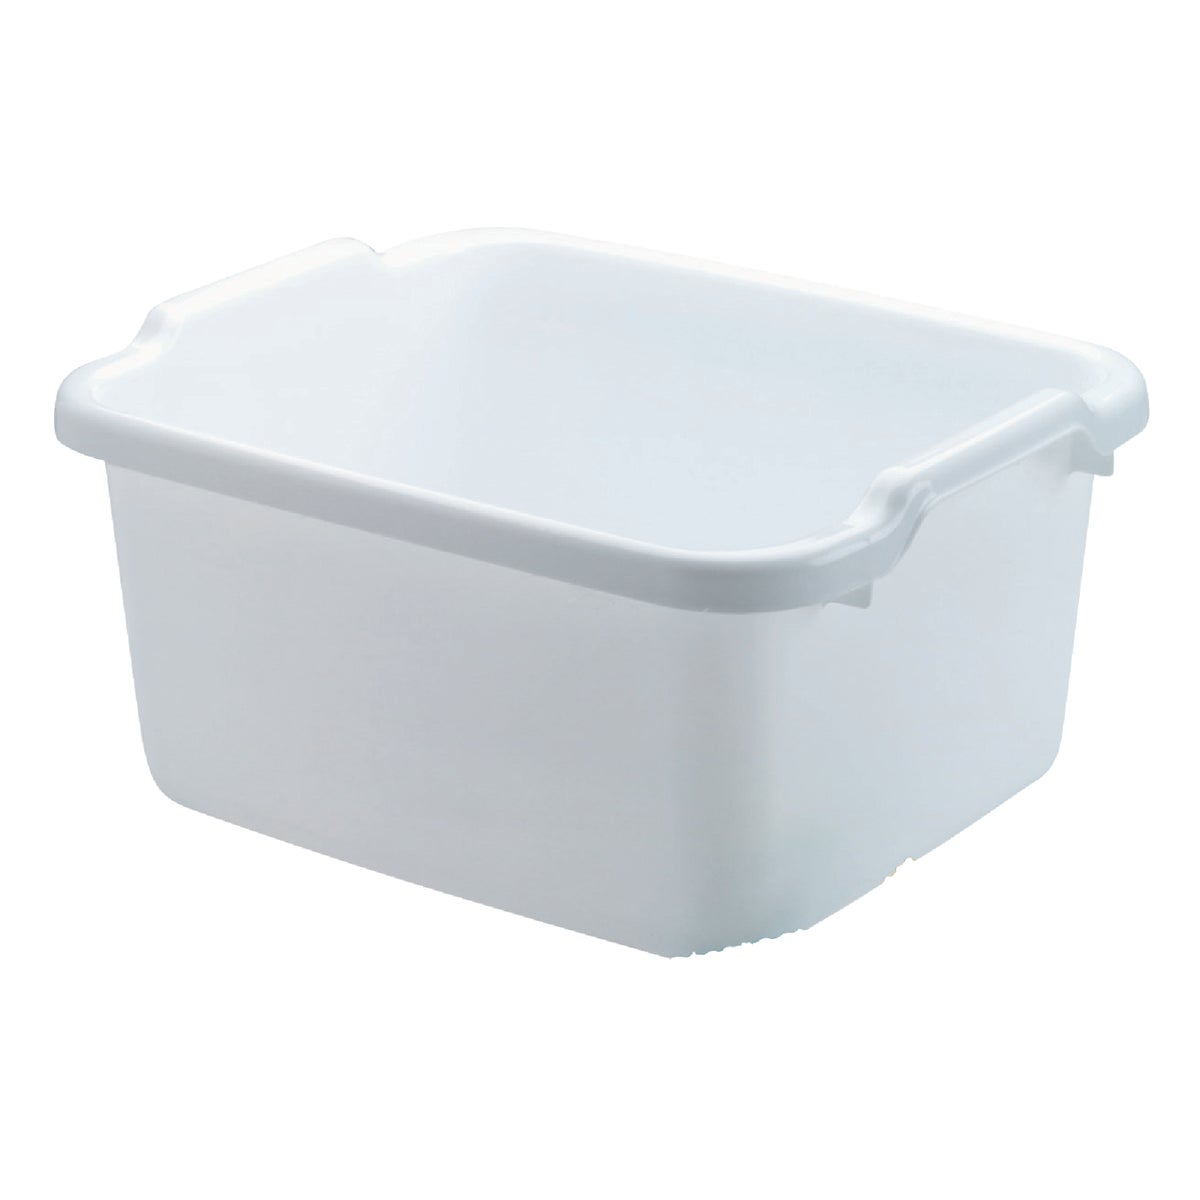 WHITE DISHPAN - 2970-AR-WHT by Rubbermaid Home